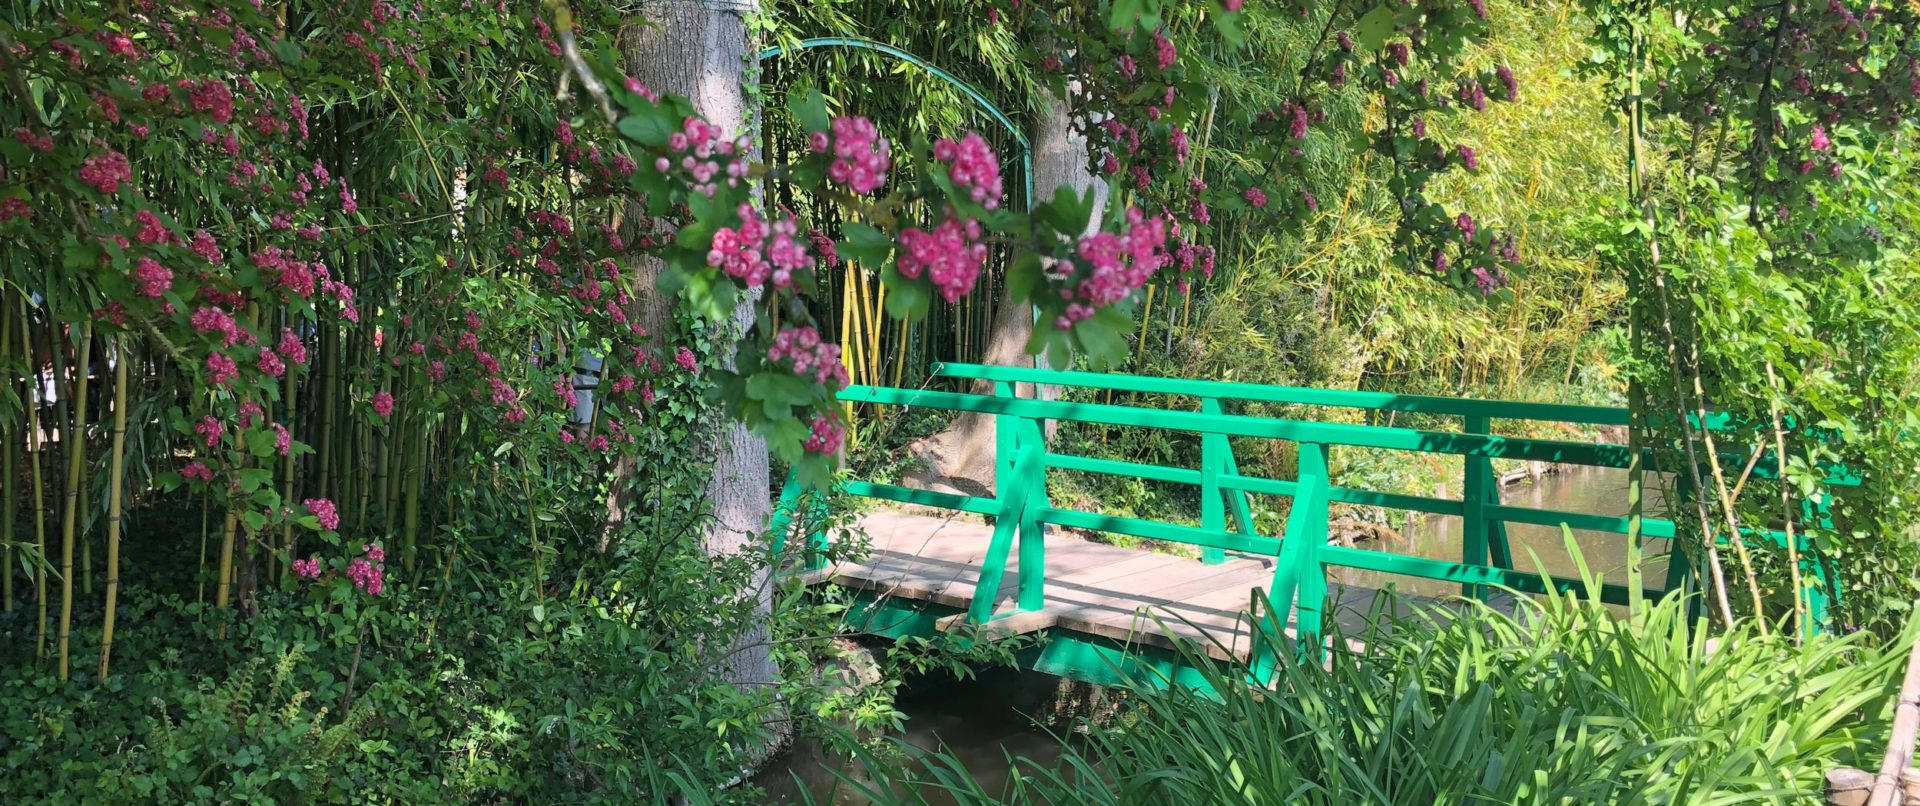 impressionism-giverny-garden-family-private-activity